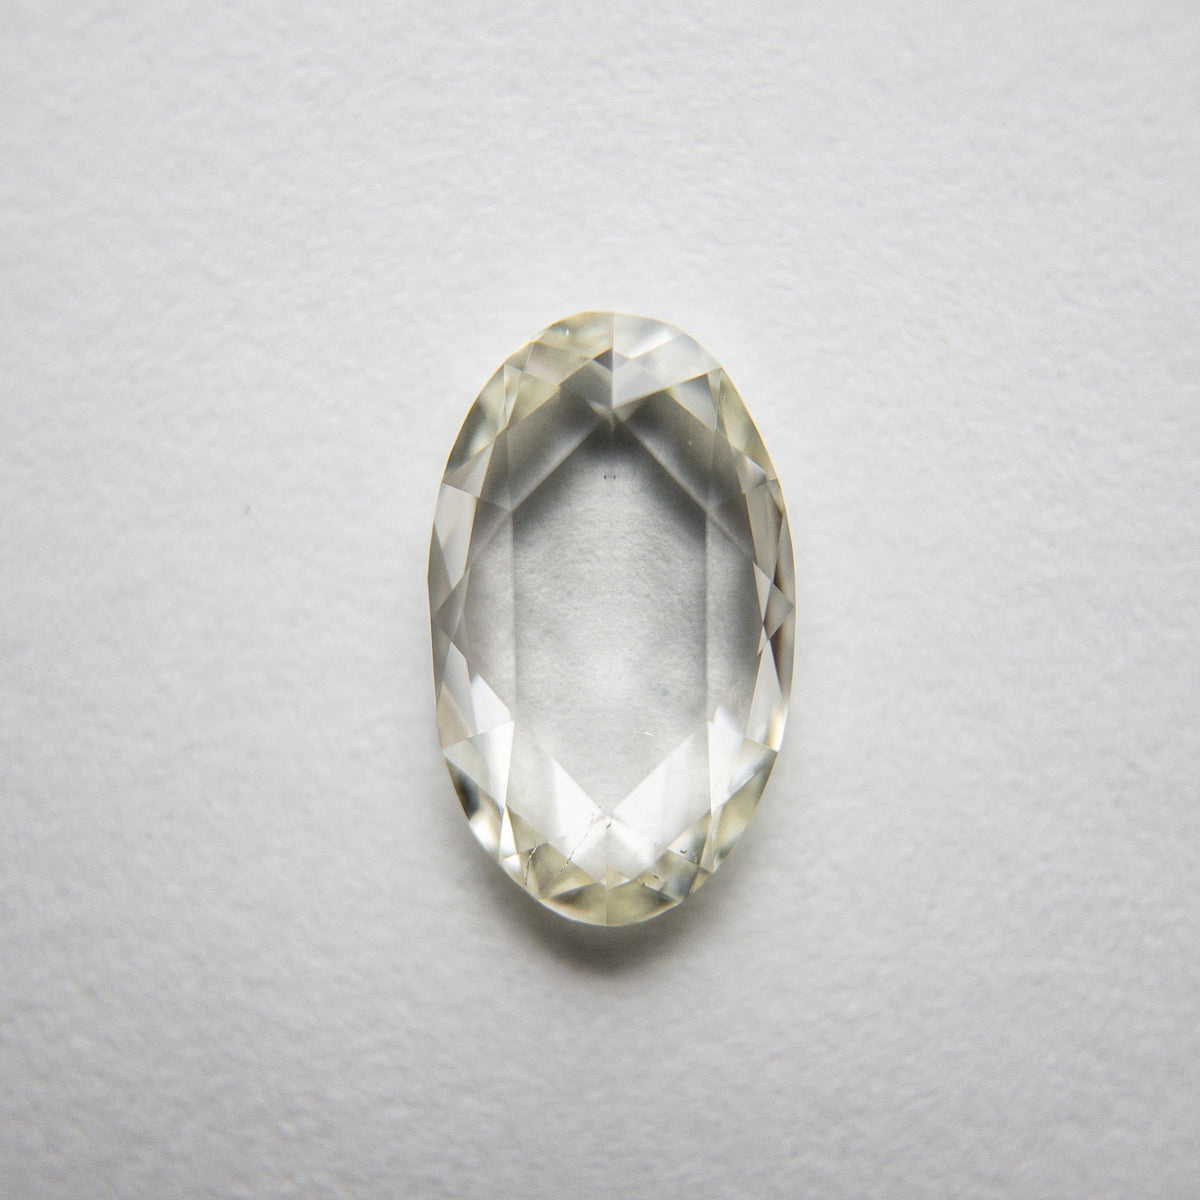 1.03ct 9.19x5.61x2.06mm SI1 L-M Oval Rosecut 18235-05